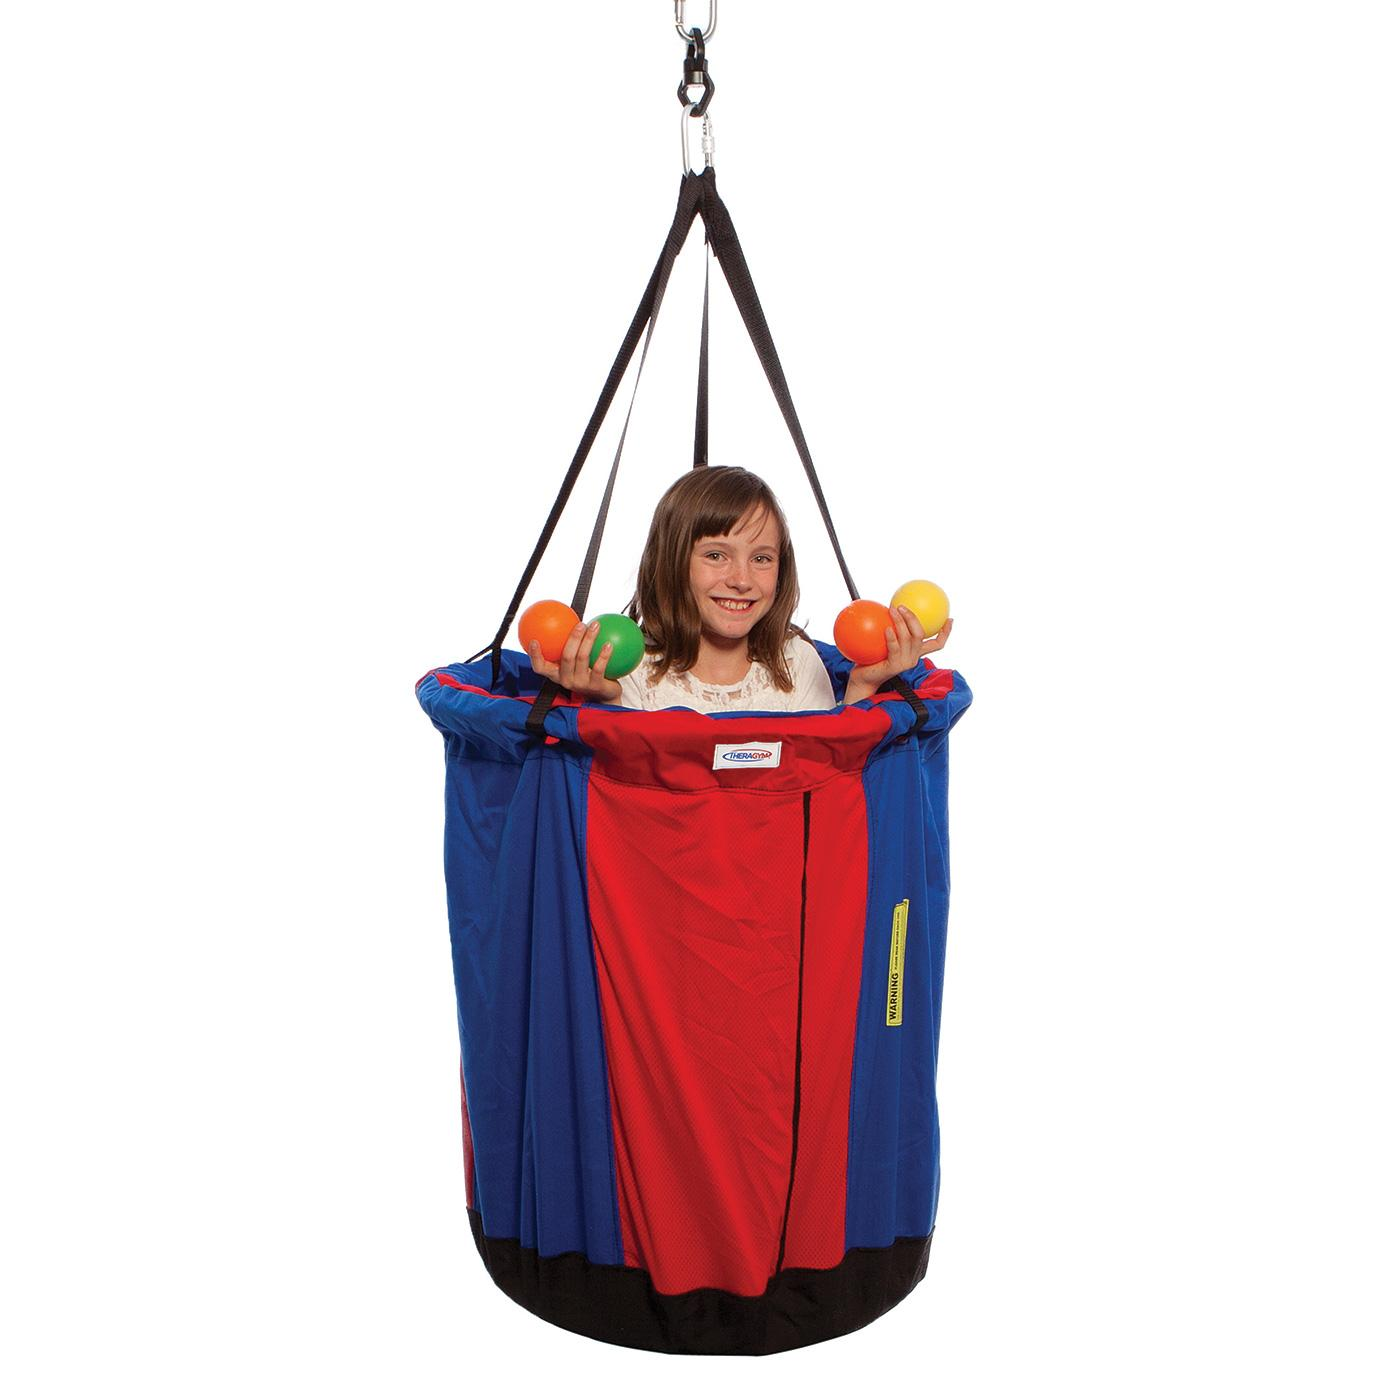 Therapy Swings